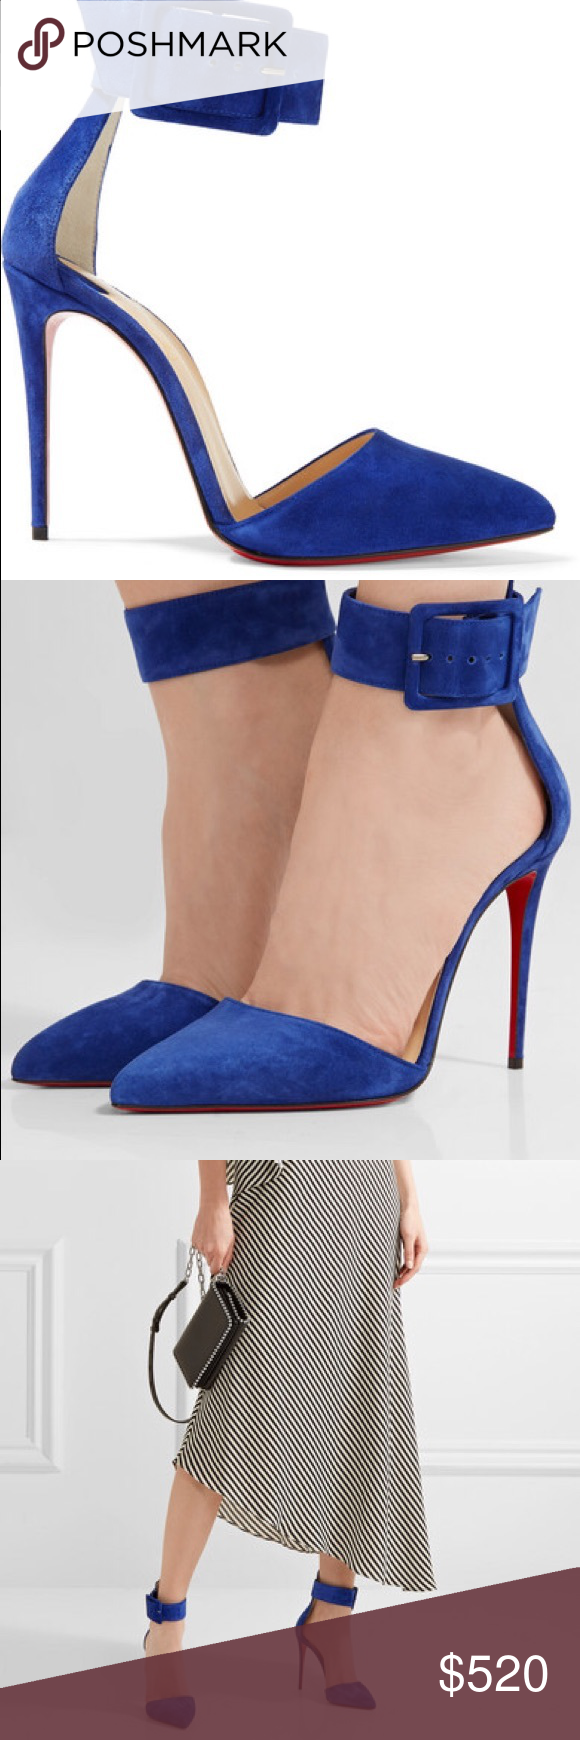 623b57927c6 Christian Louboutin Harler 100 Blue suede pumps with strap. New in box.  Please note